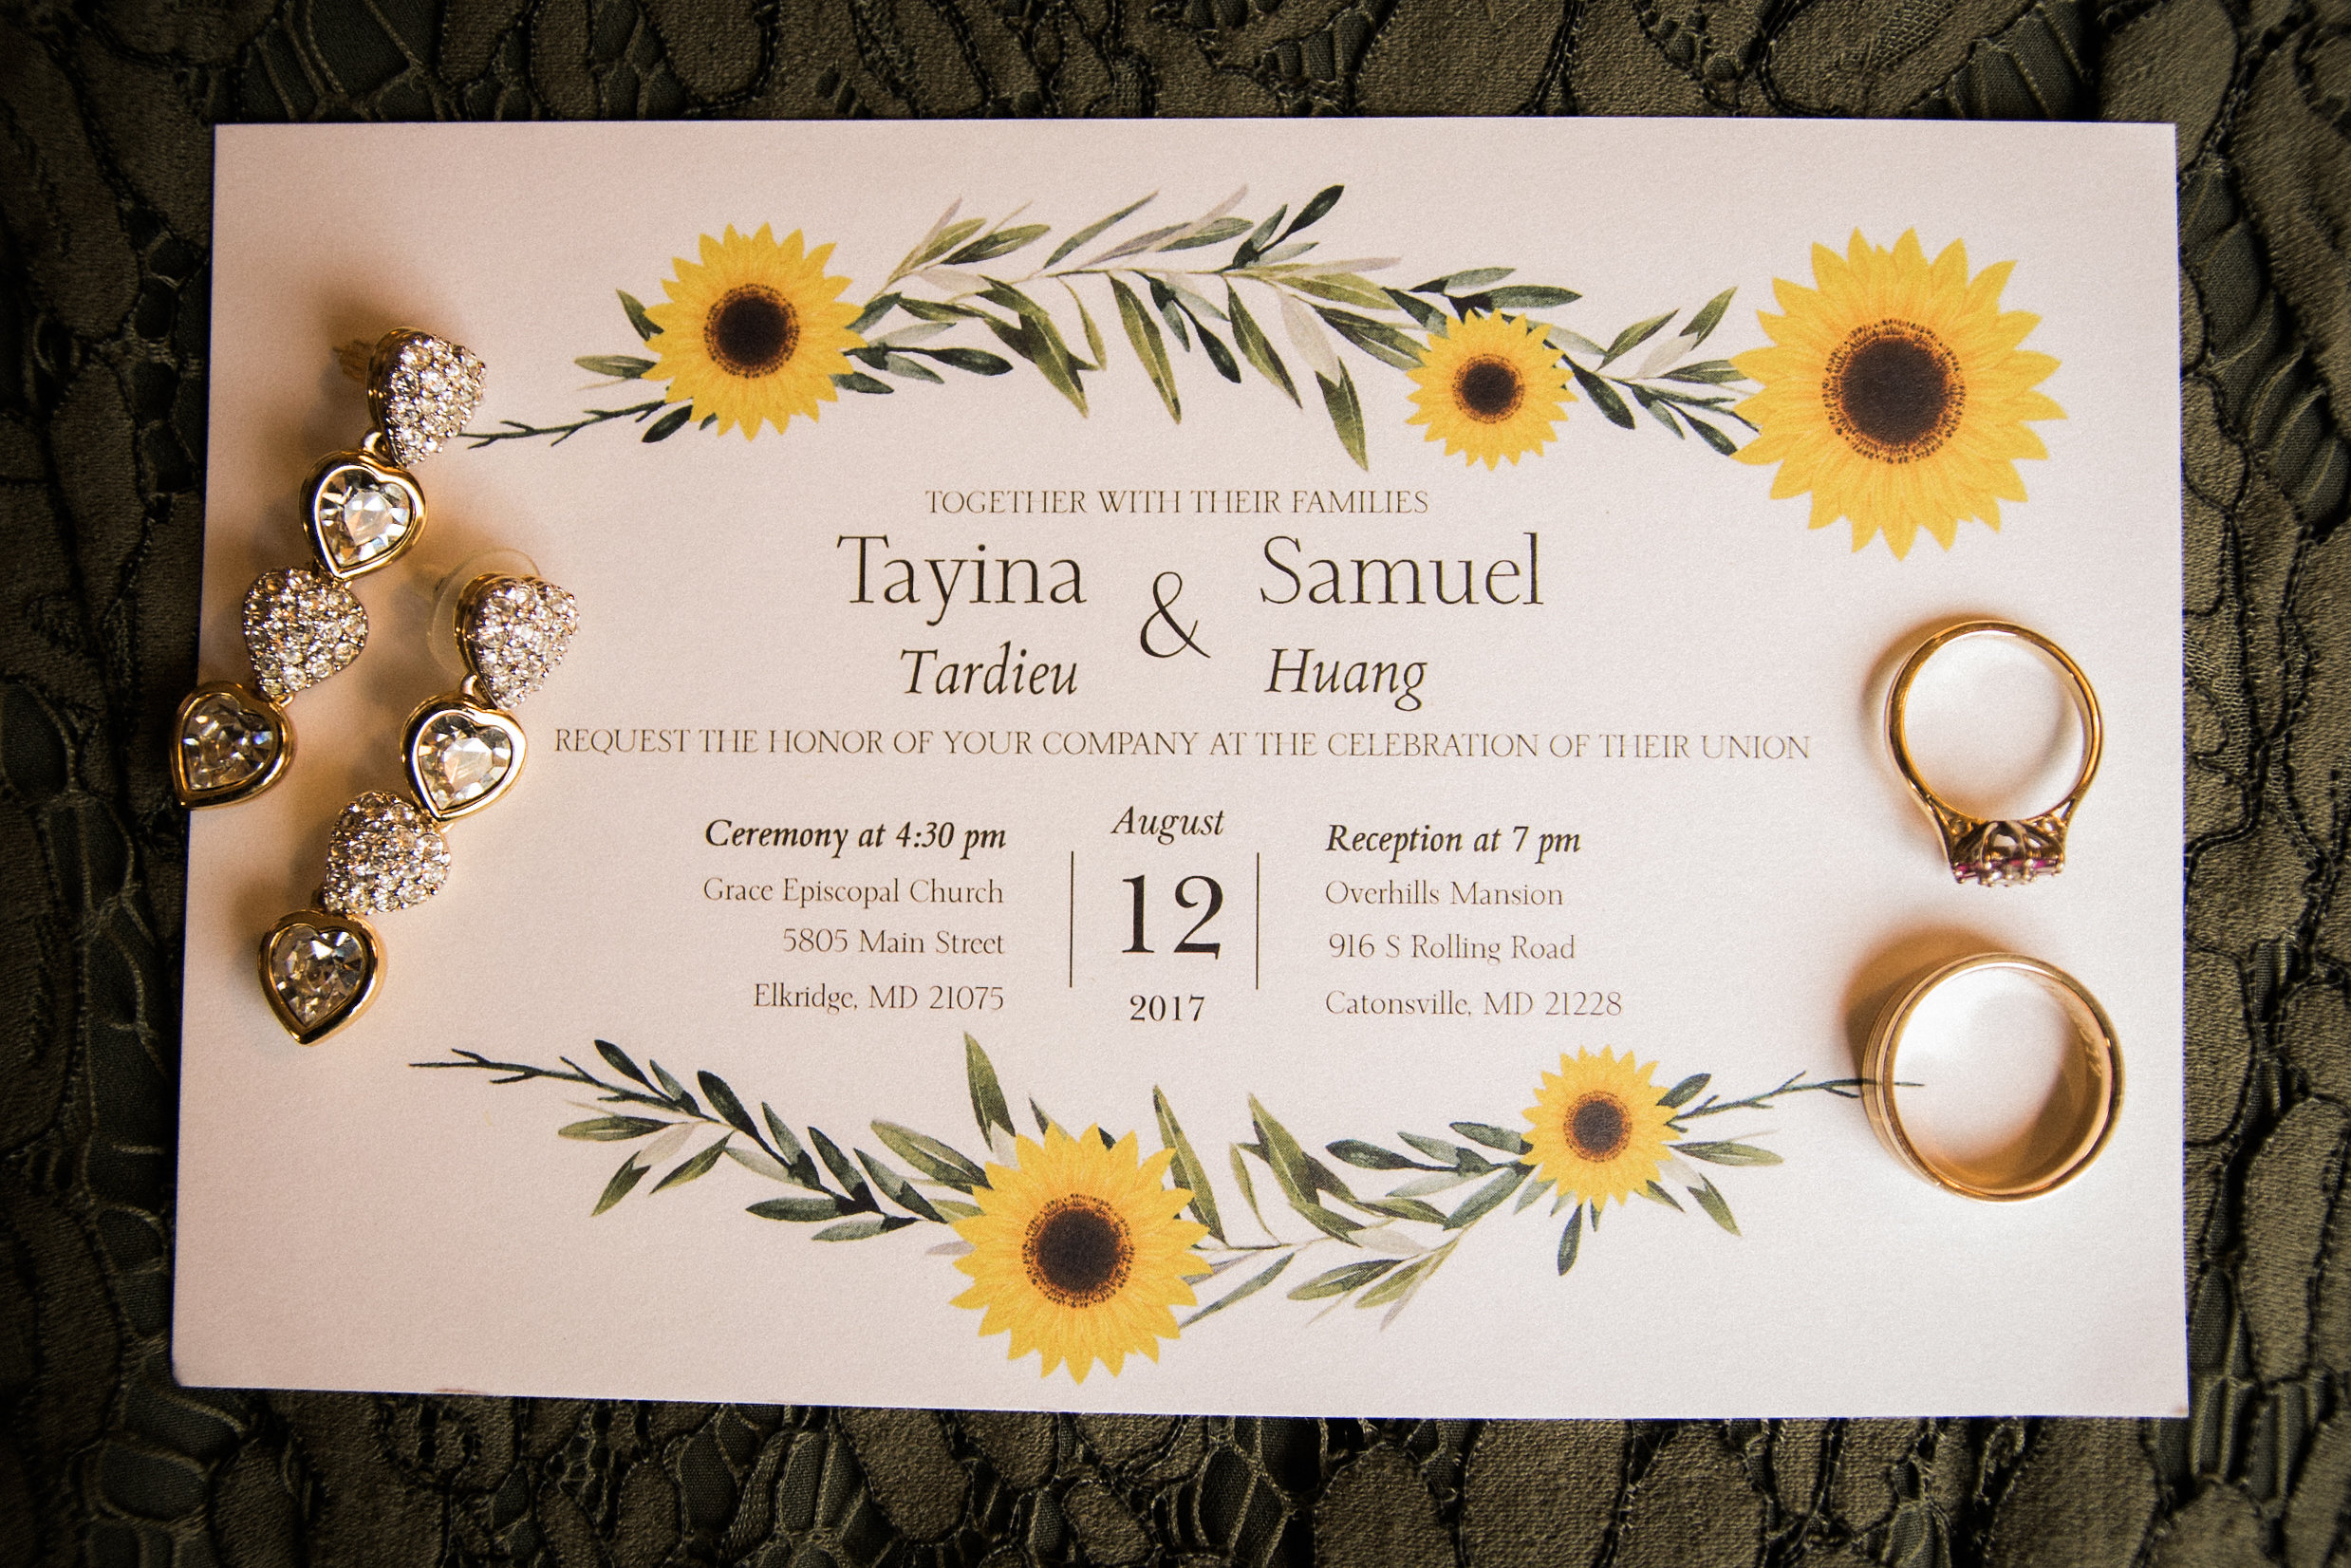 Wedding invitation and jewelry